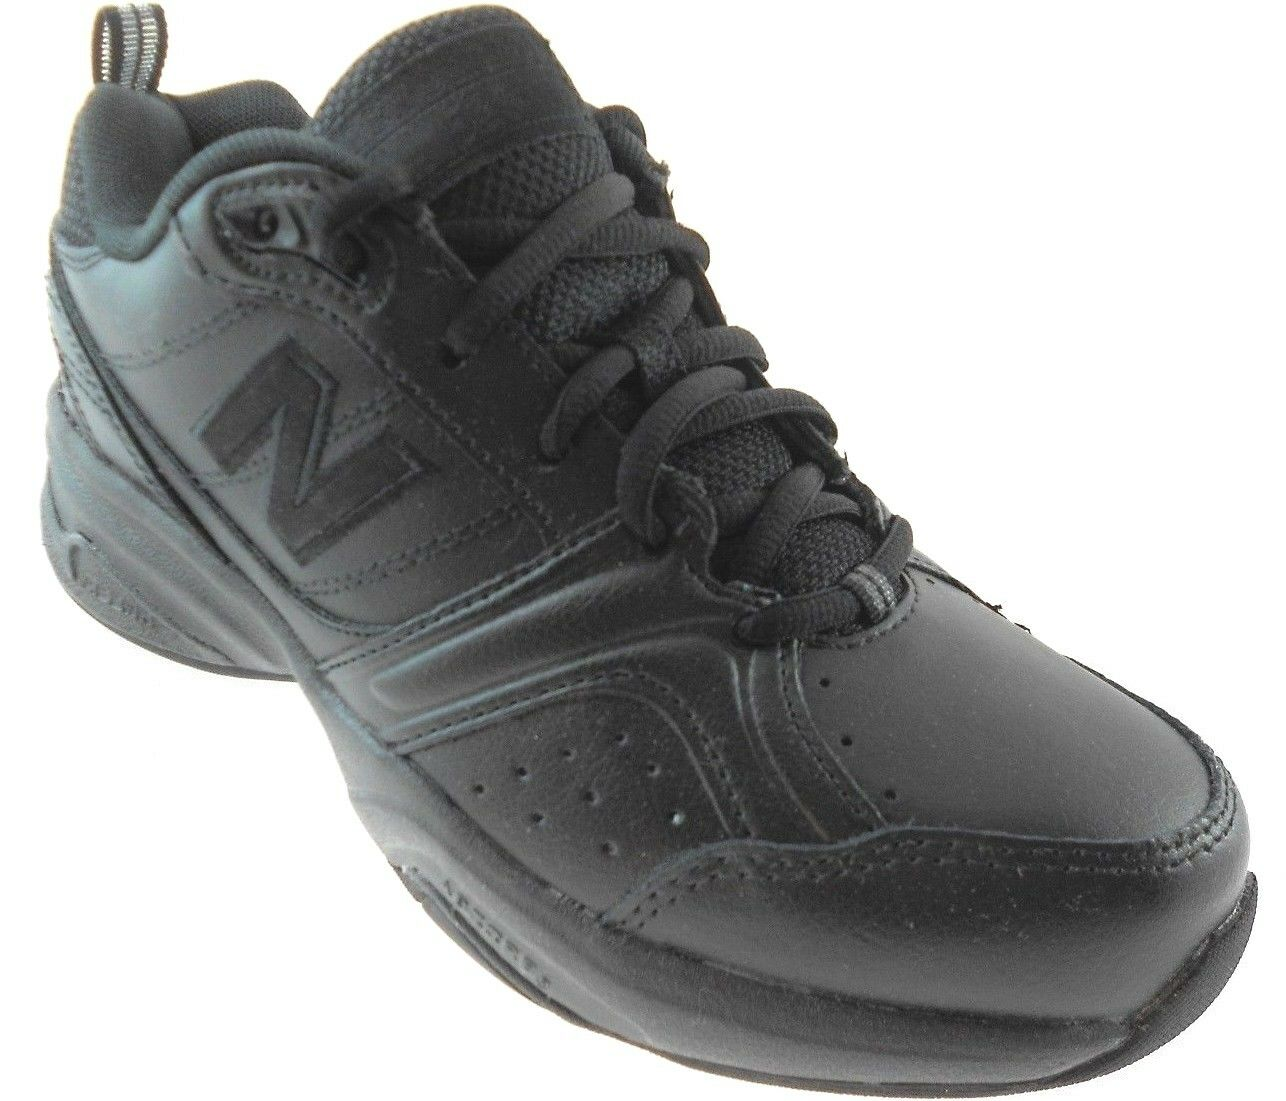 NEU BALANCE WX623AB2 WOMEN'S BLACK 623 CROSS TRAINING Schuhe sz 6